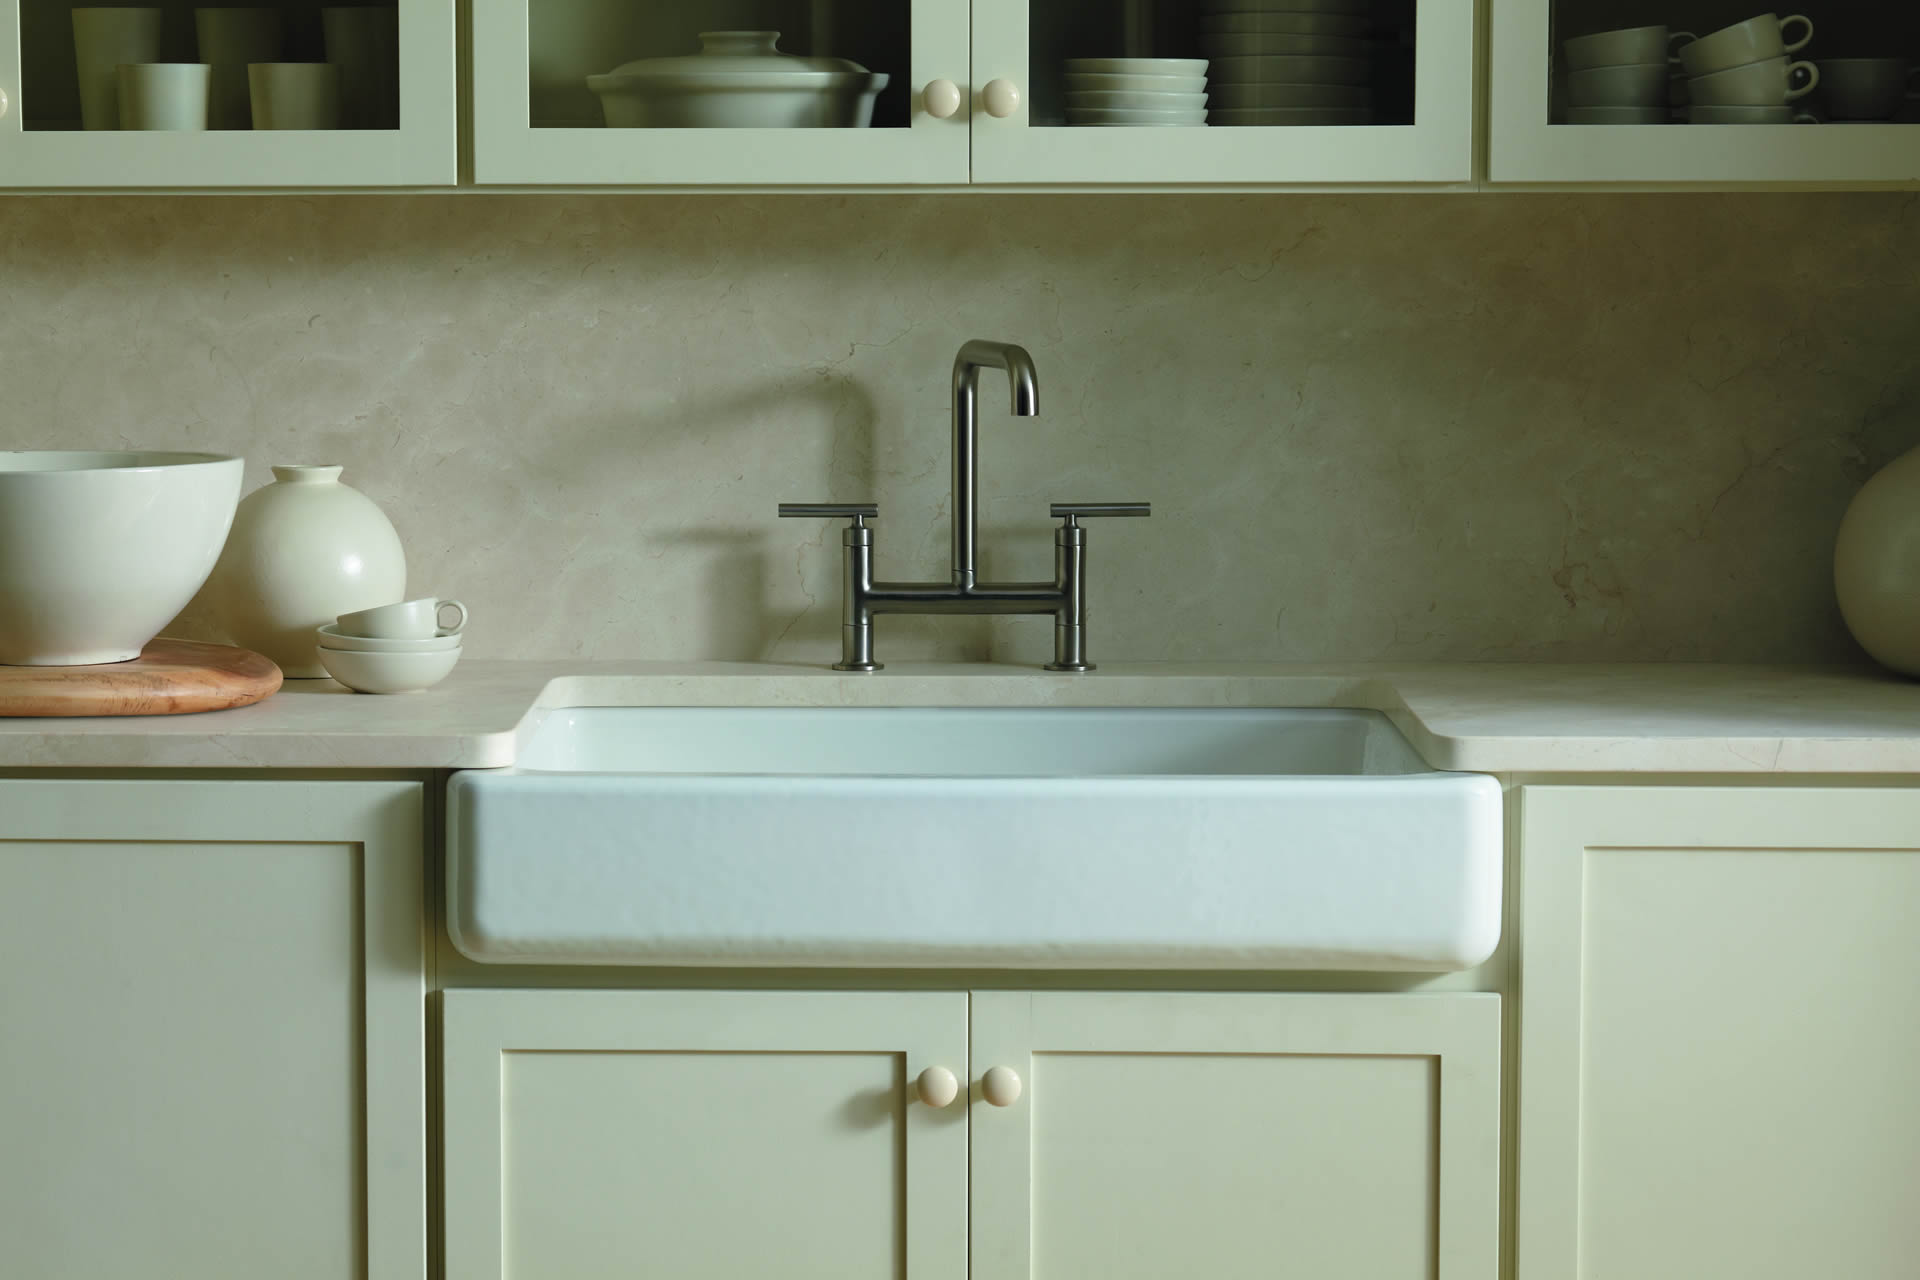 Kitchen Sinks Store | Wool Kitchen and Bath Store